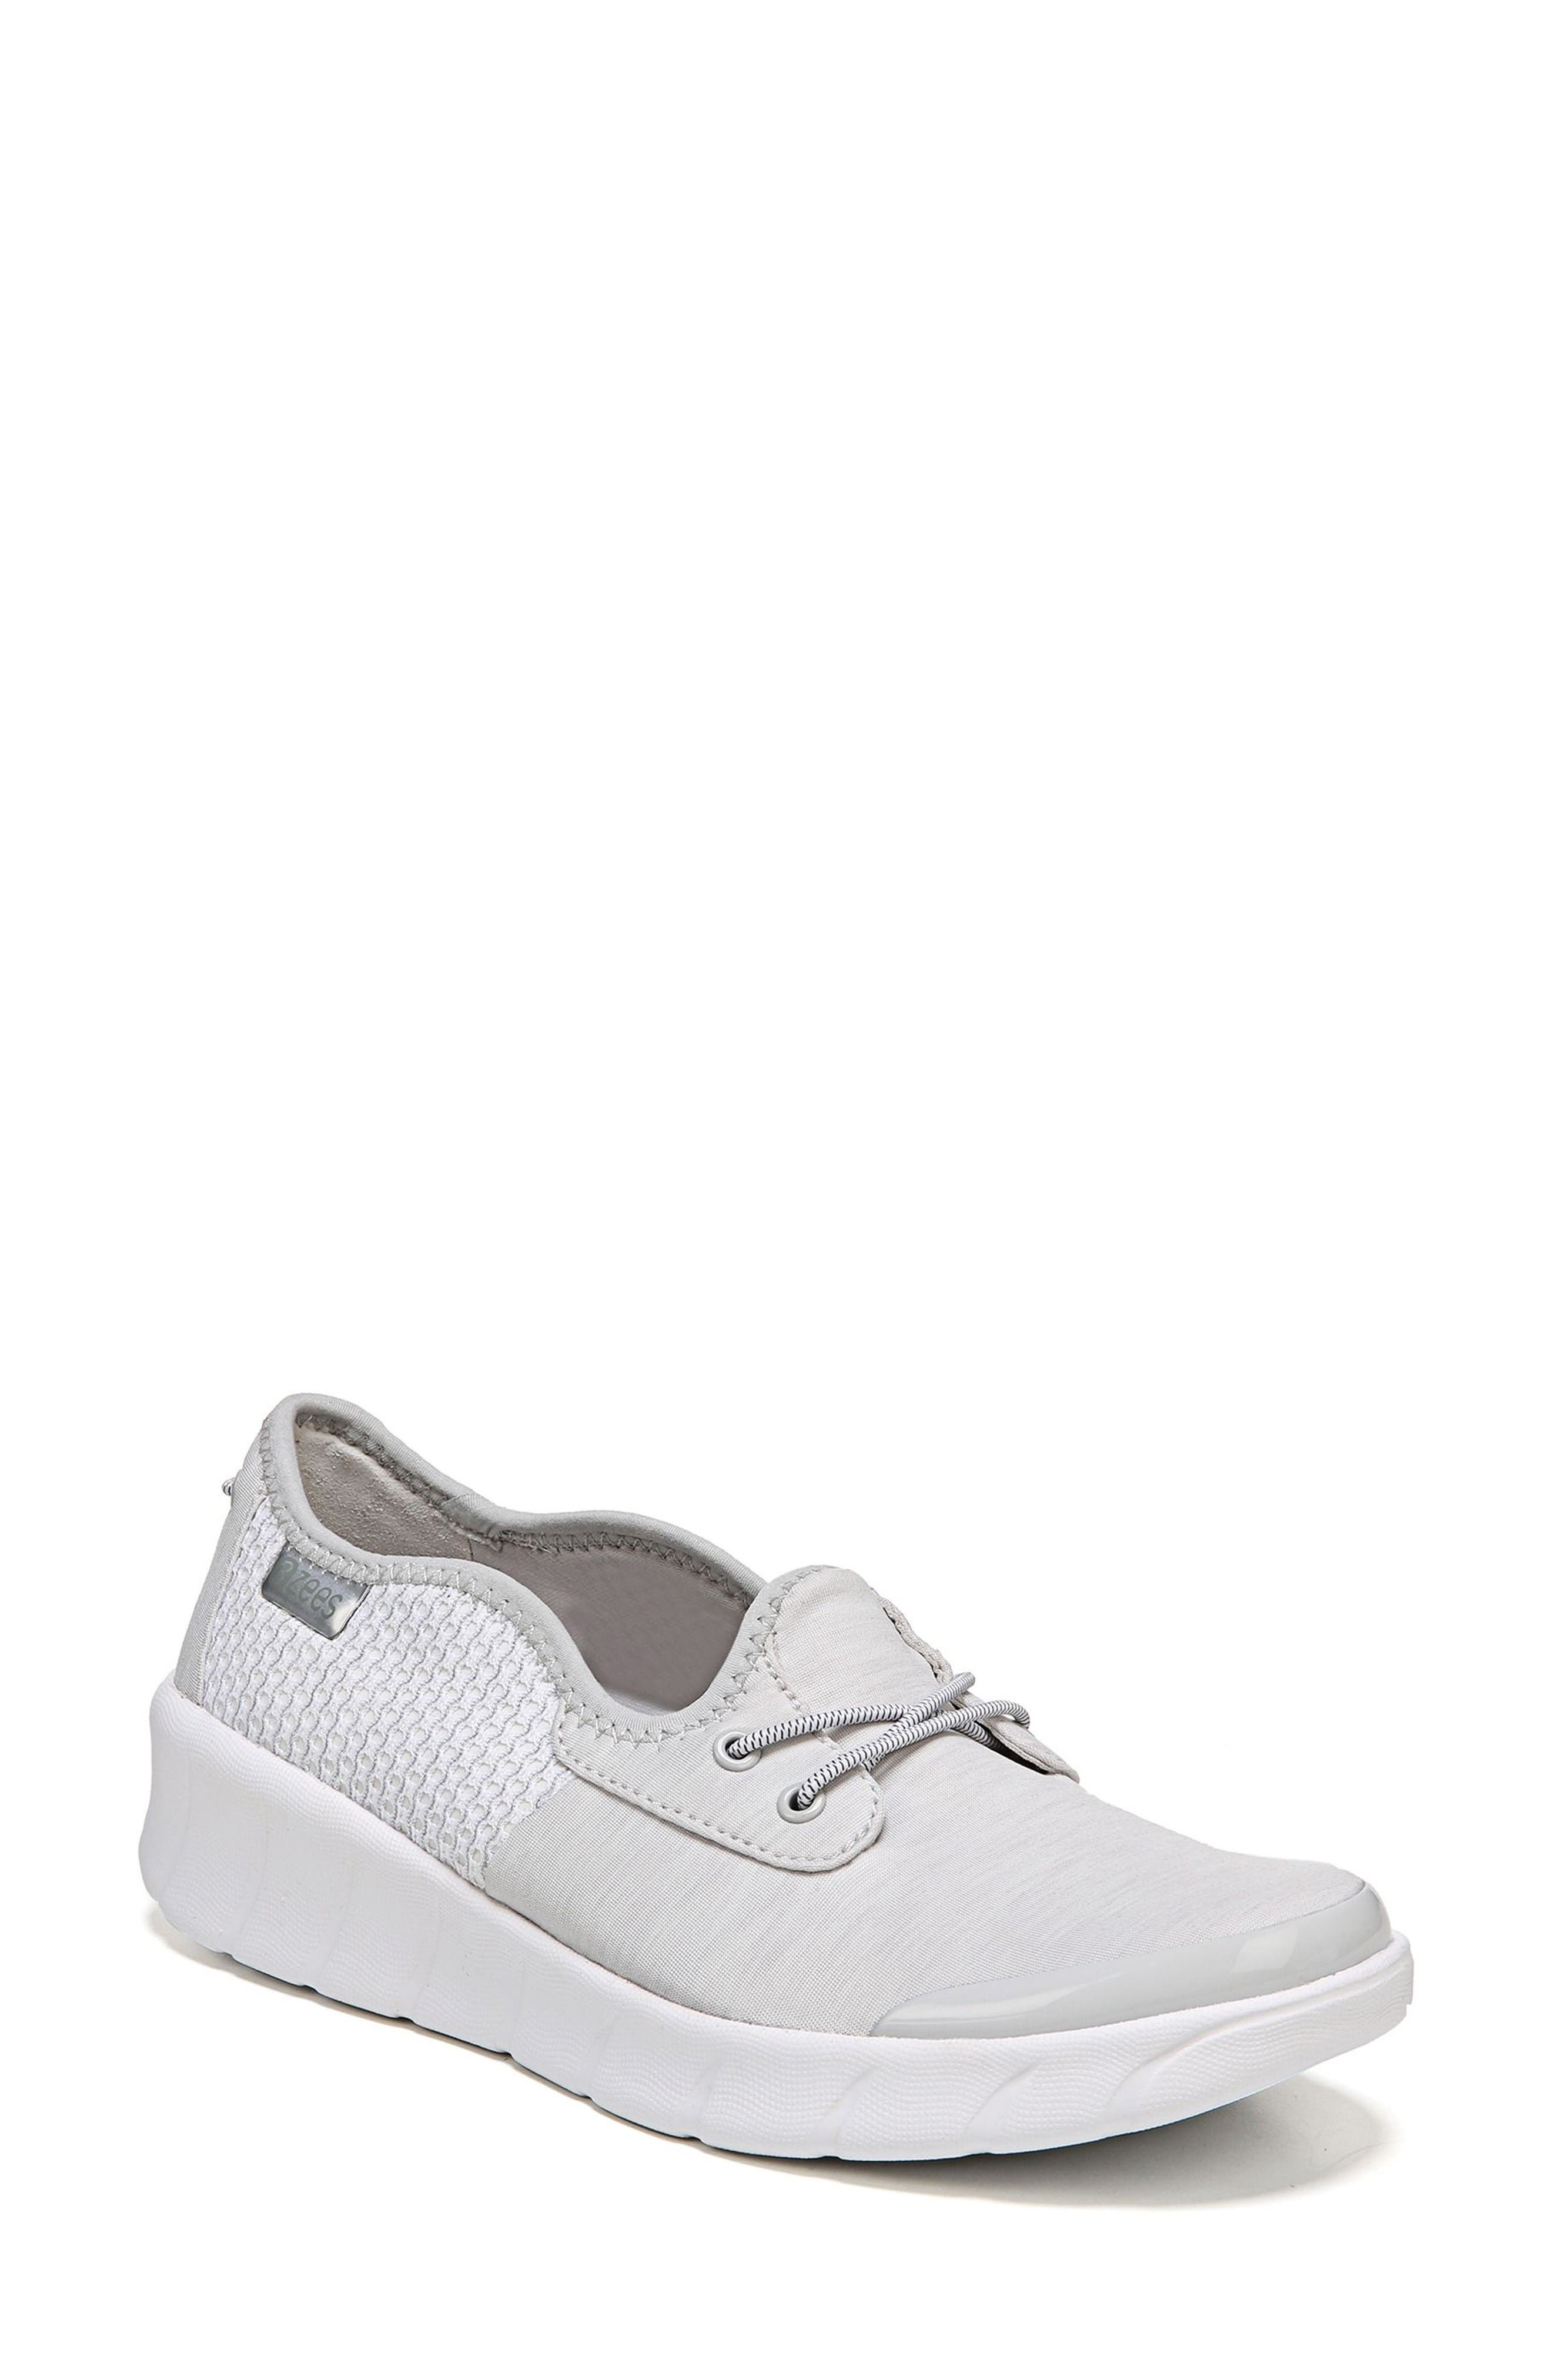 Oz Slip-On Sneaker,                         Main,                         color, Grey Fabric